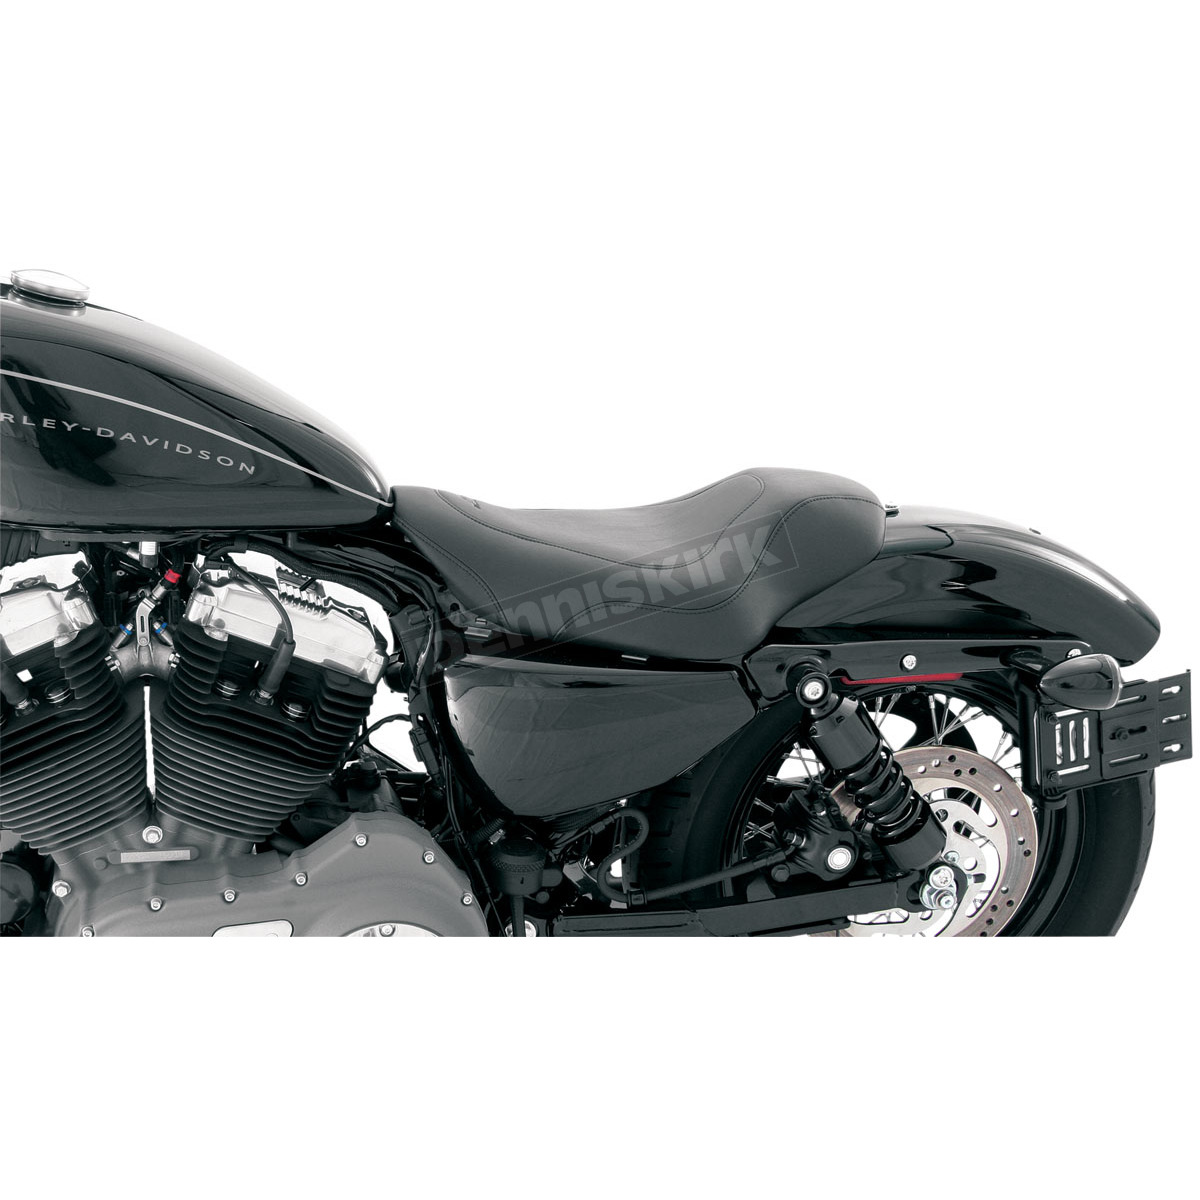 Harley XL1200V Sportster Seventy-Two 2012-2016 Tripper Solo Seat by Mustang